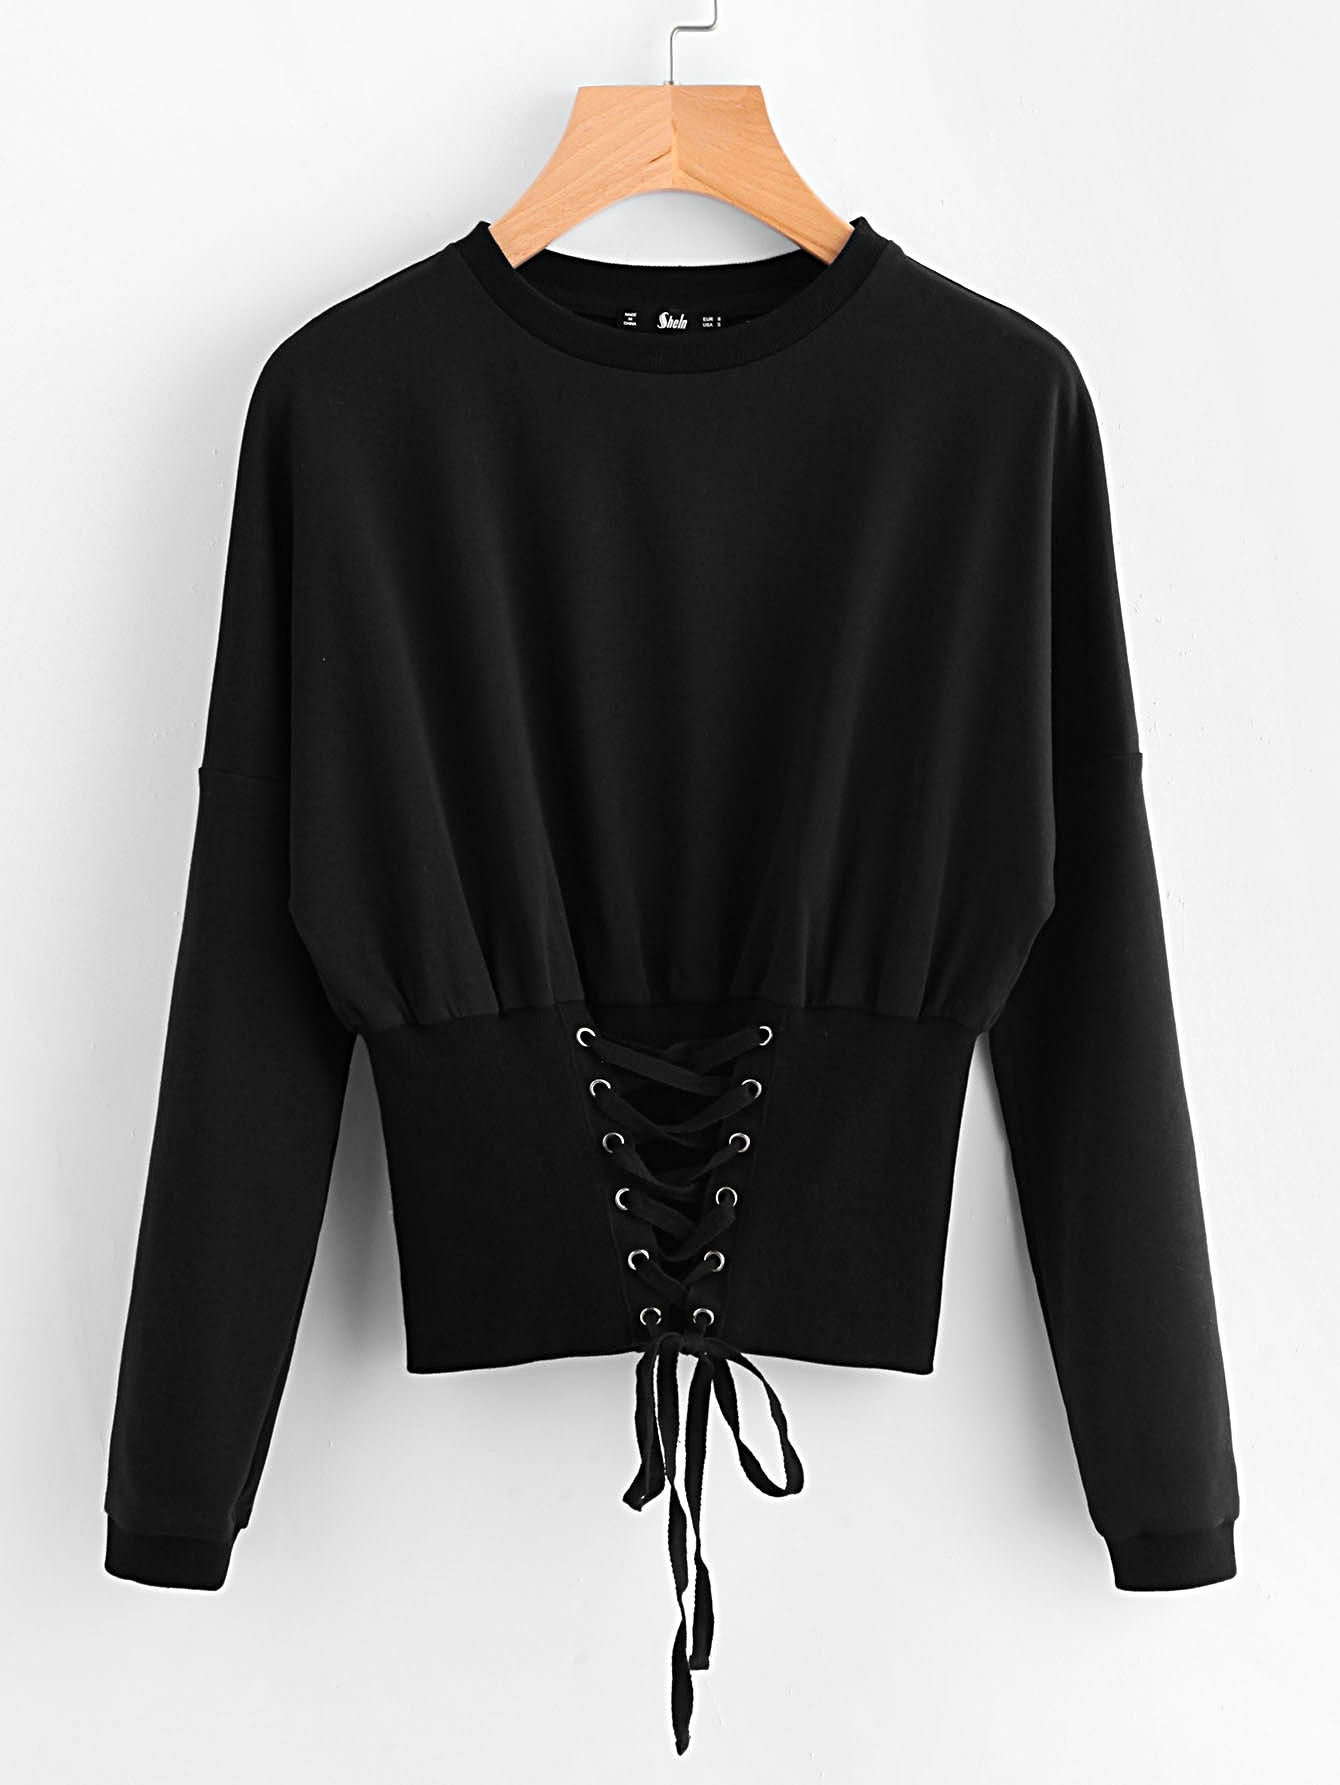 Lace Up Wide Hem Black Women Sweatshirt